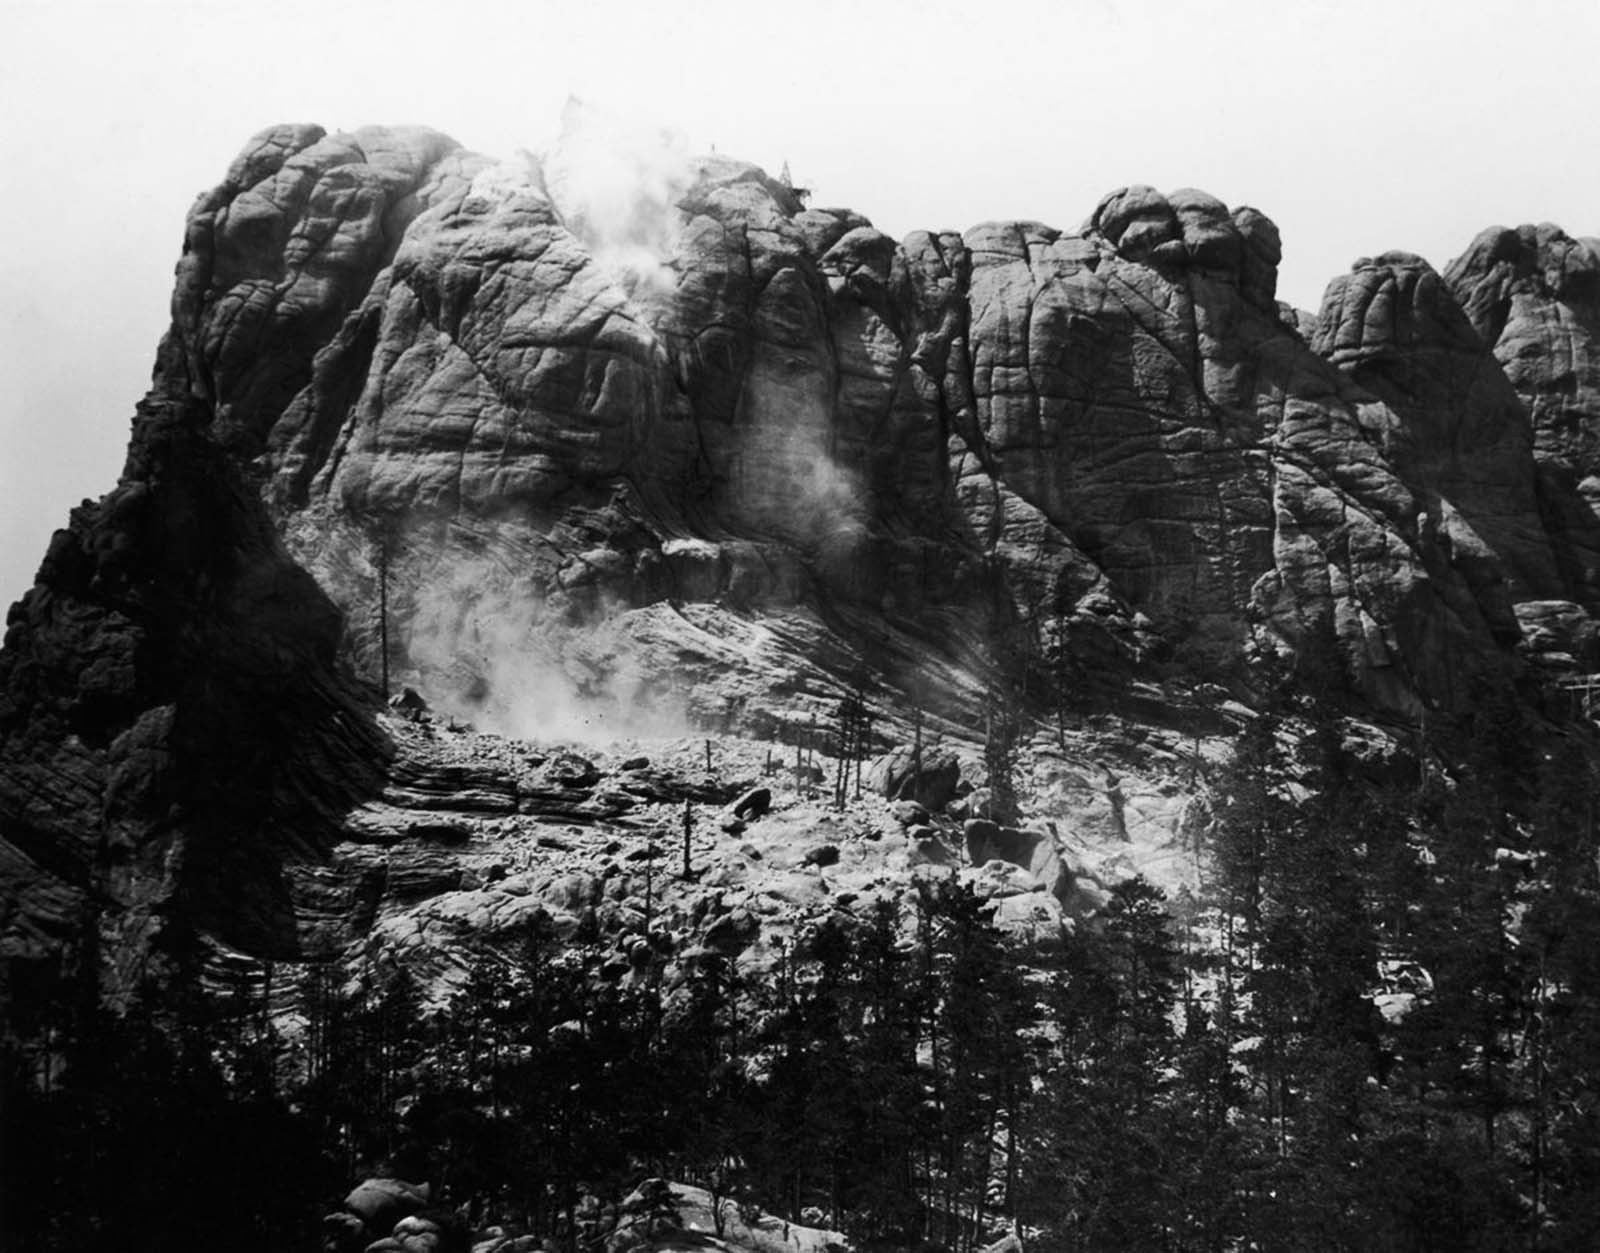 Mount Rushmore getting blasted. 1927.